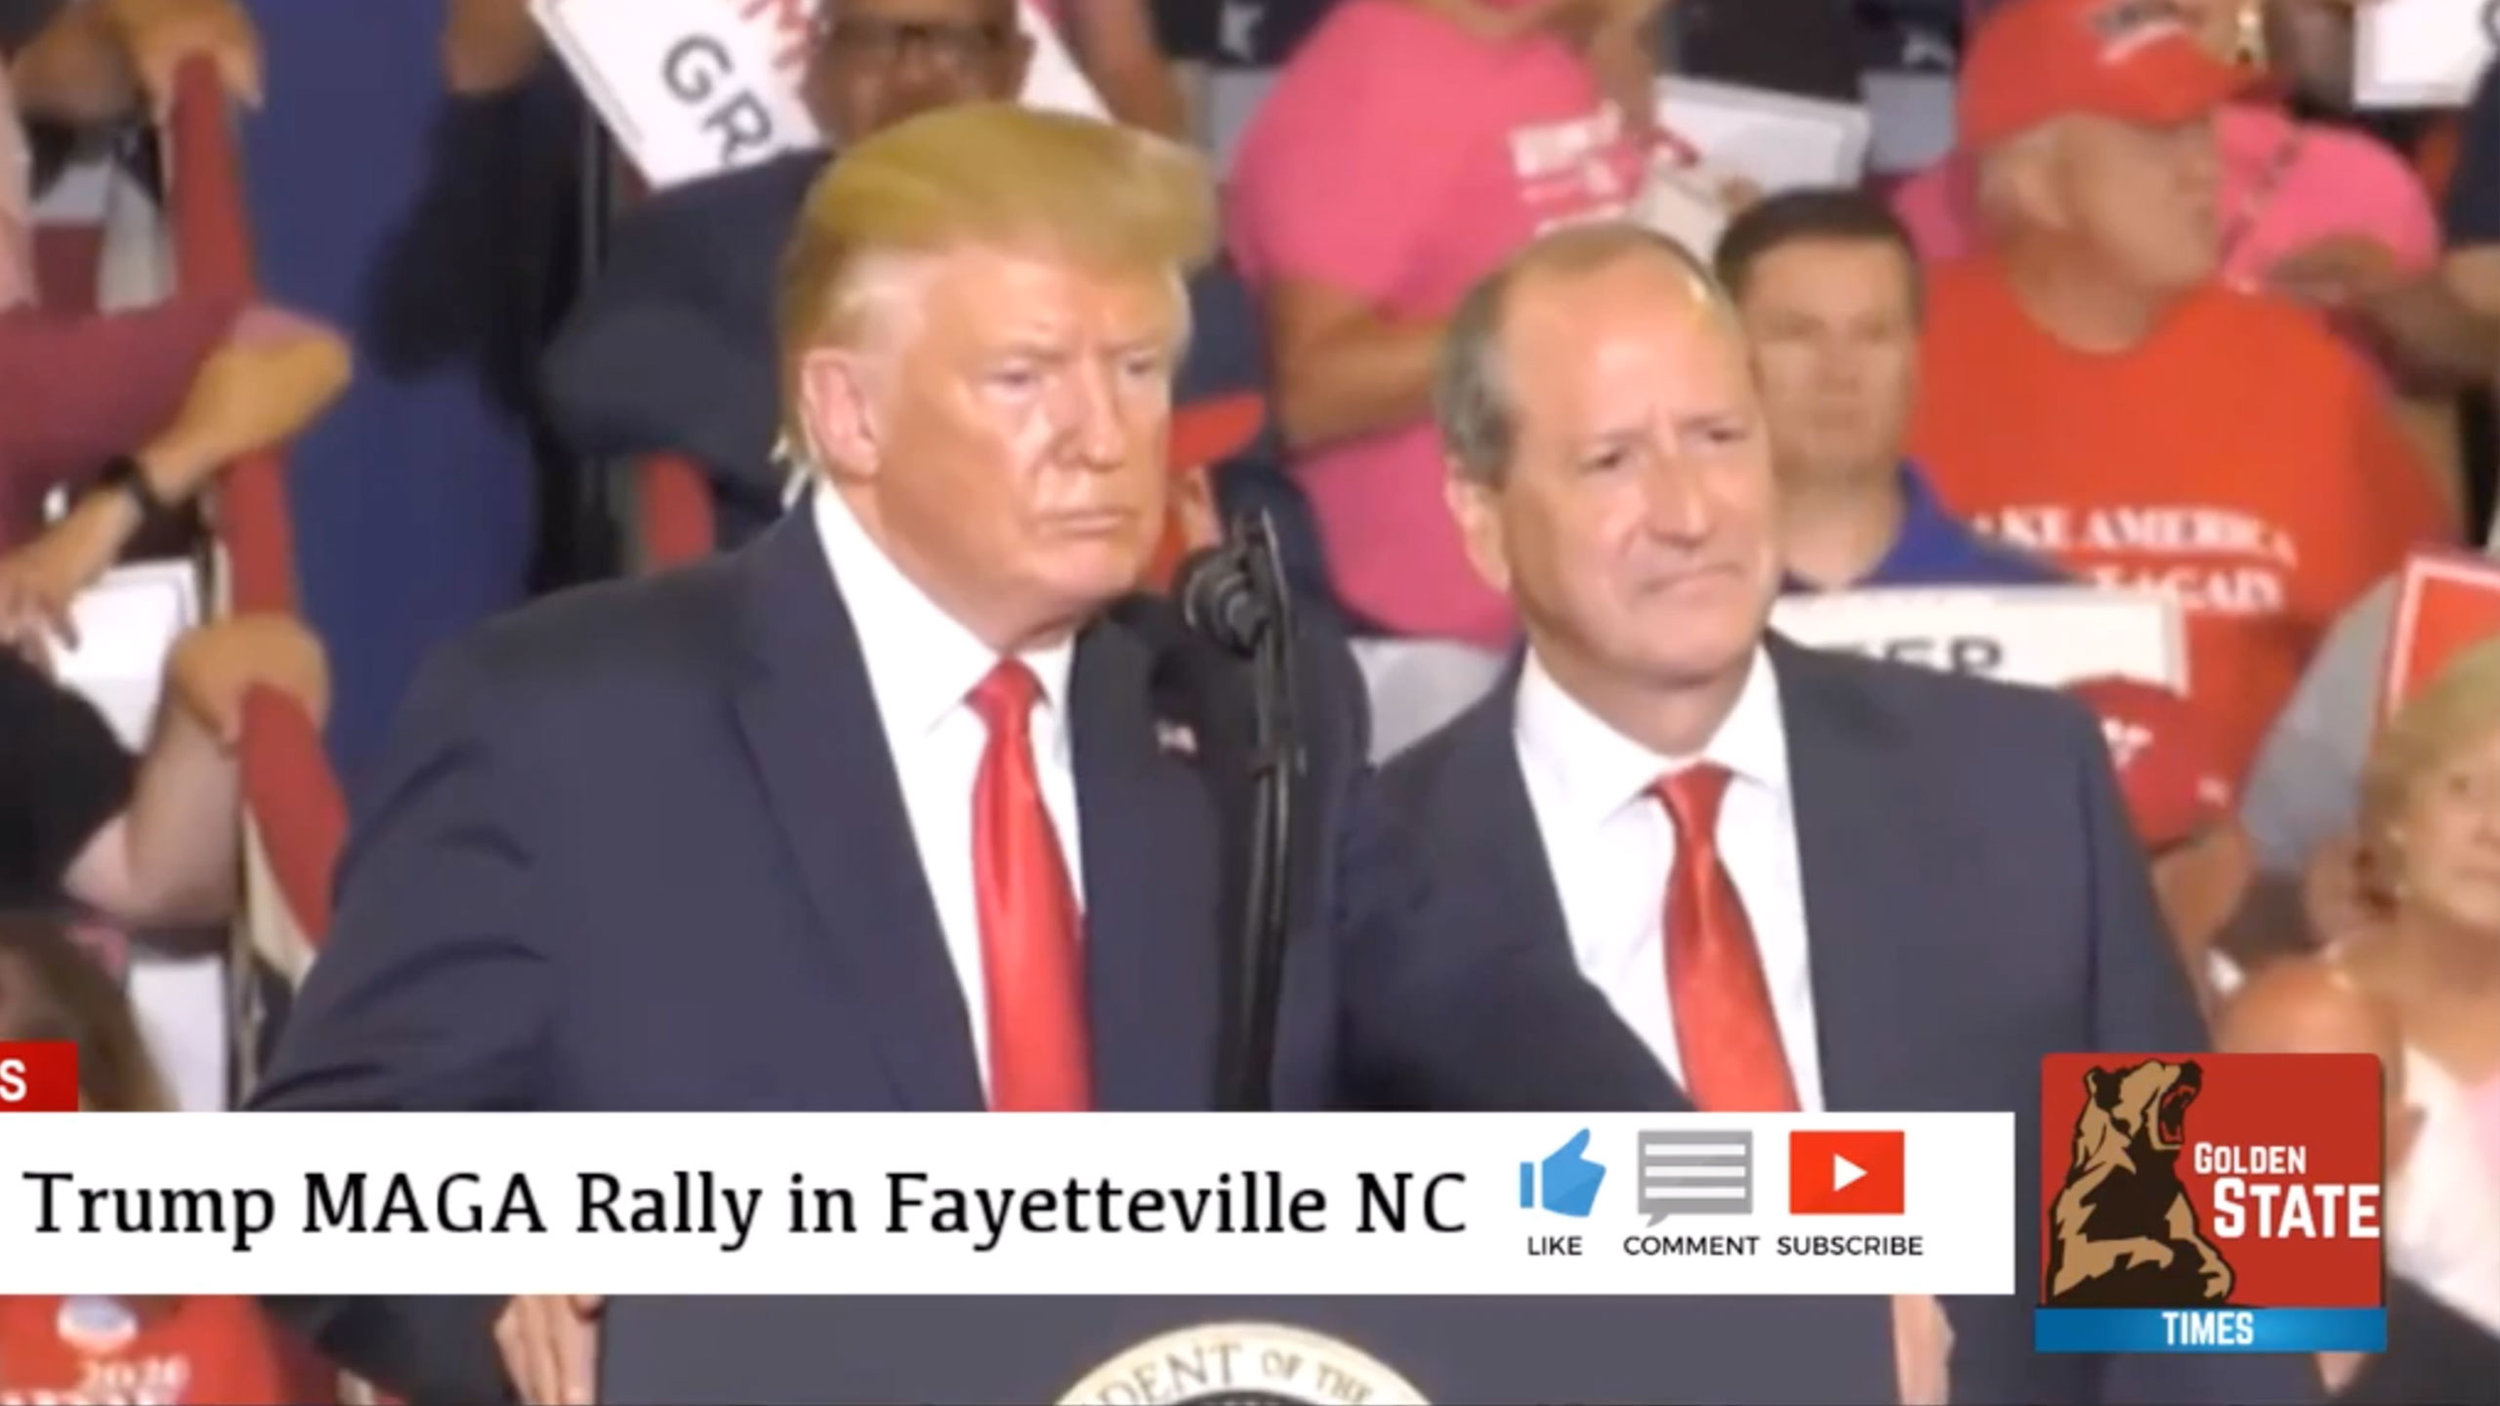 Screenshot from Golden State Times video of President Trump's rally for Republican Dan Bishop in Fayetteville, NC, where there's a special election.